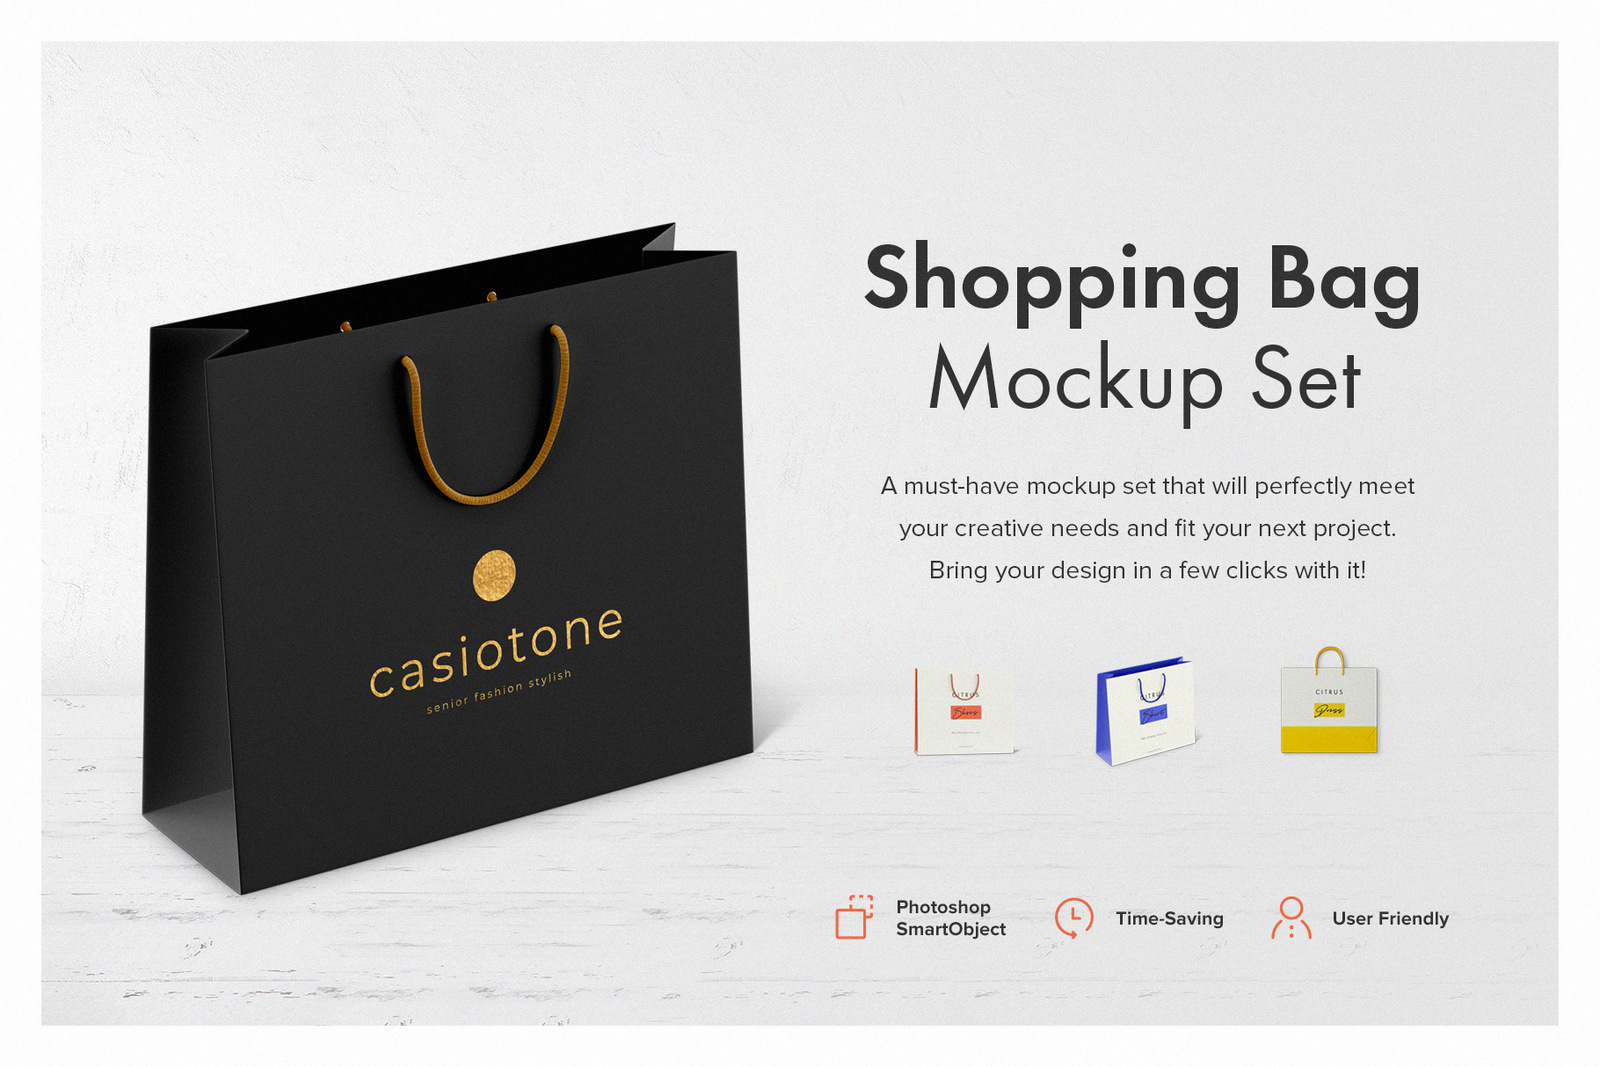 Shopping Bag Mockup Set In Packaging Mockups On Yellow Images